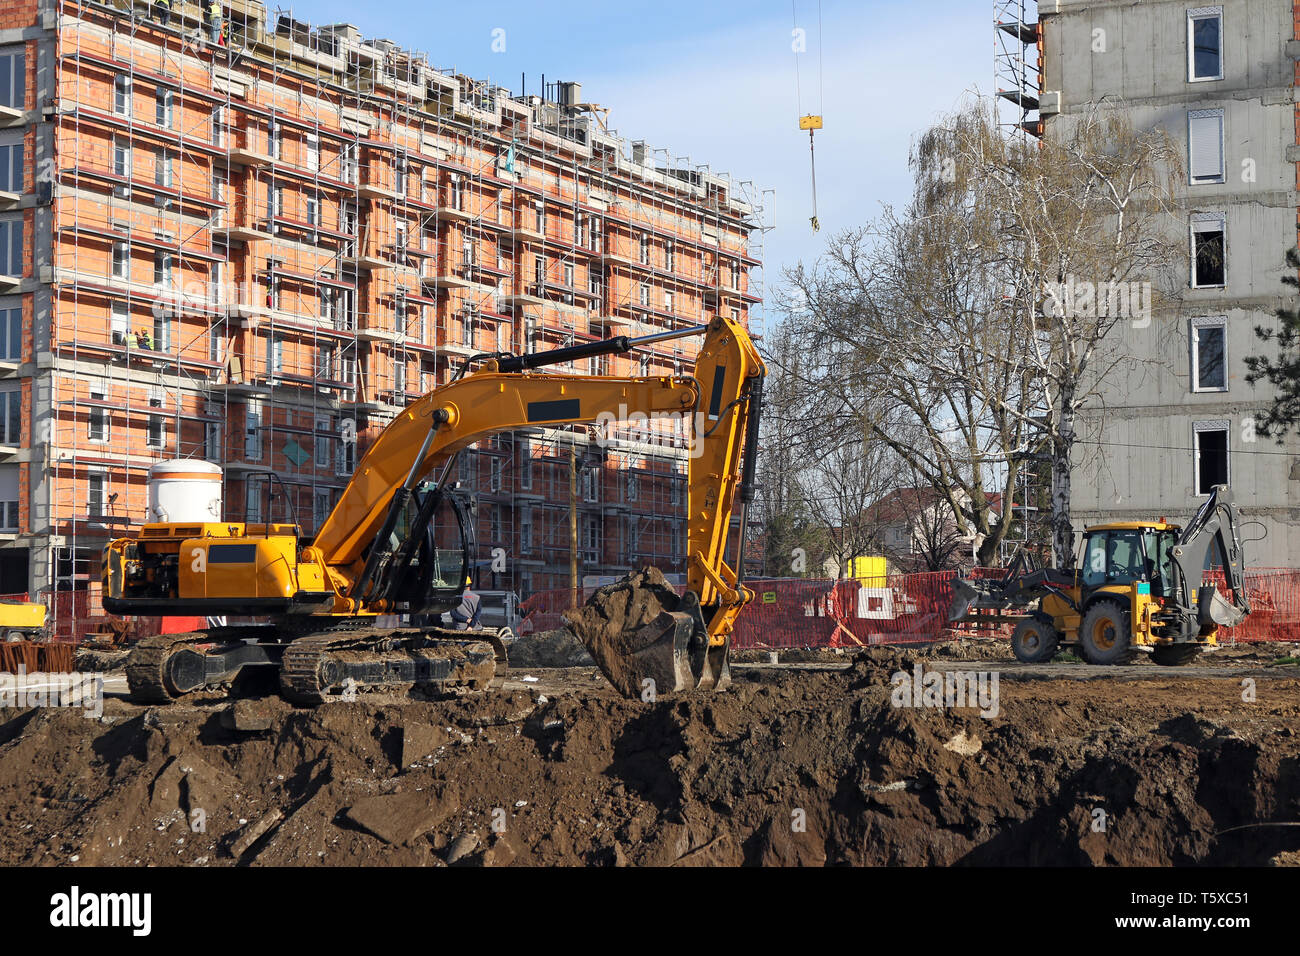 new building construction site and excavators - Stock Image